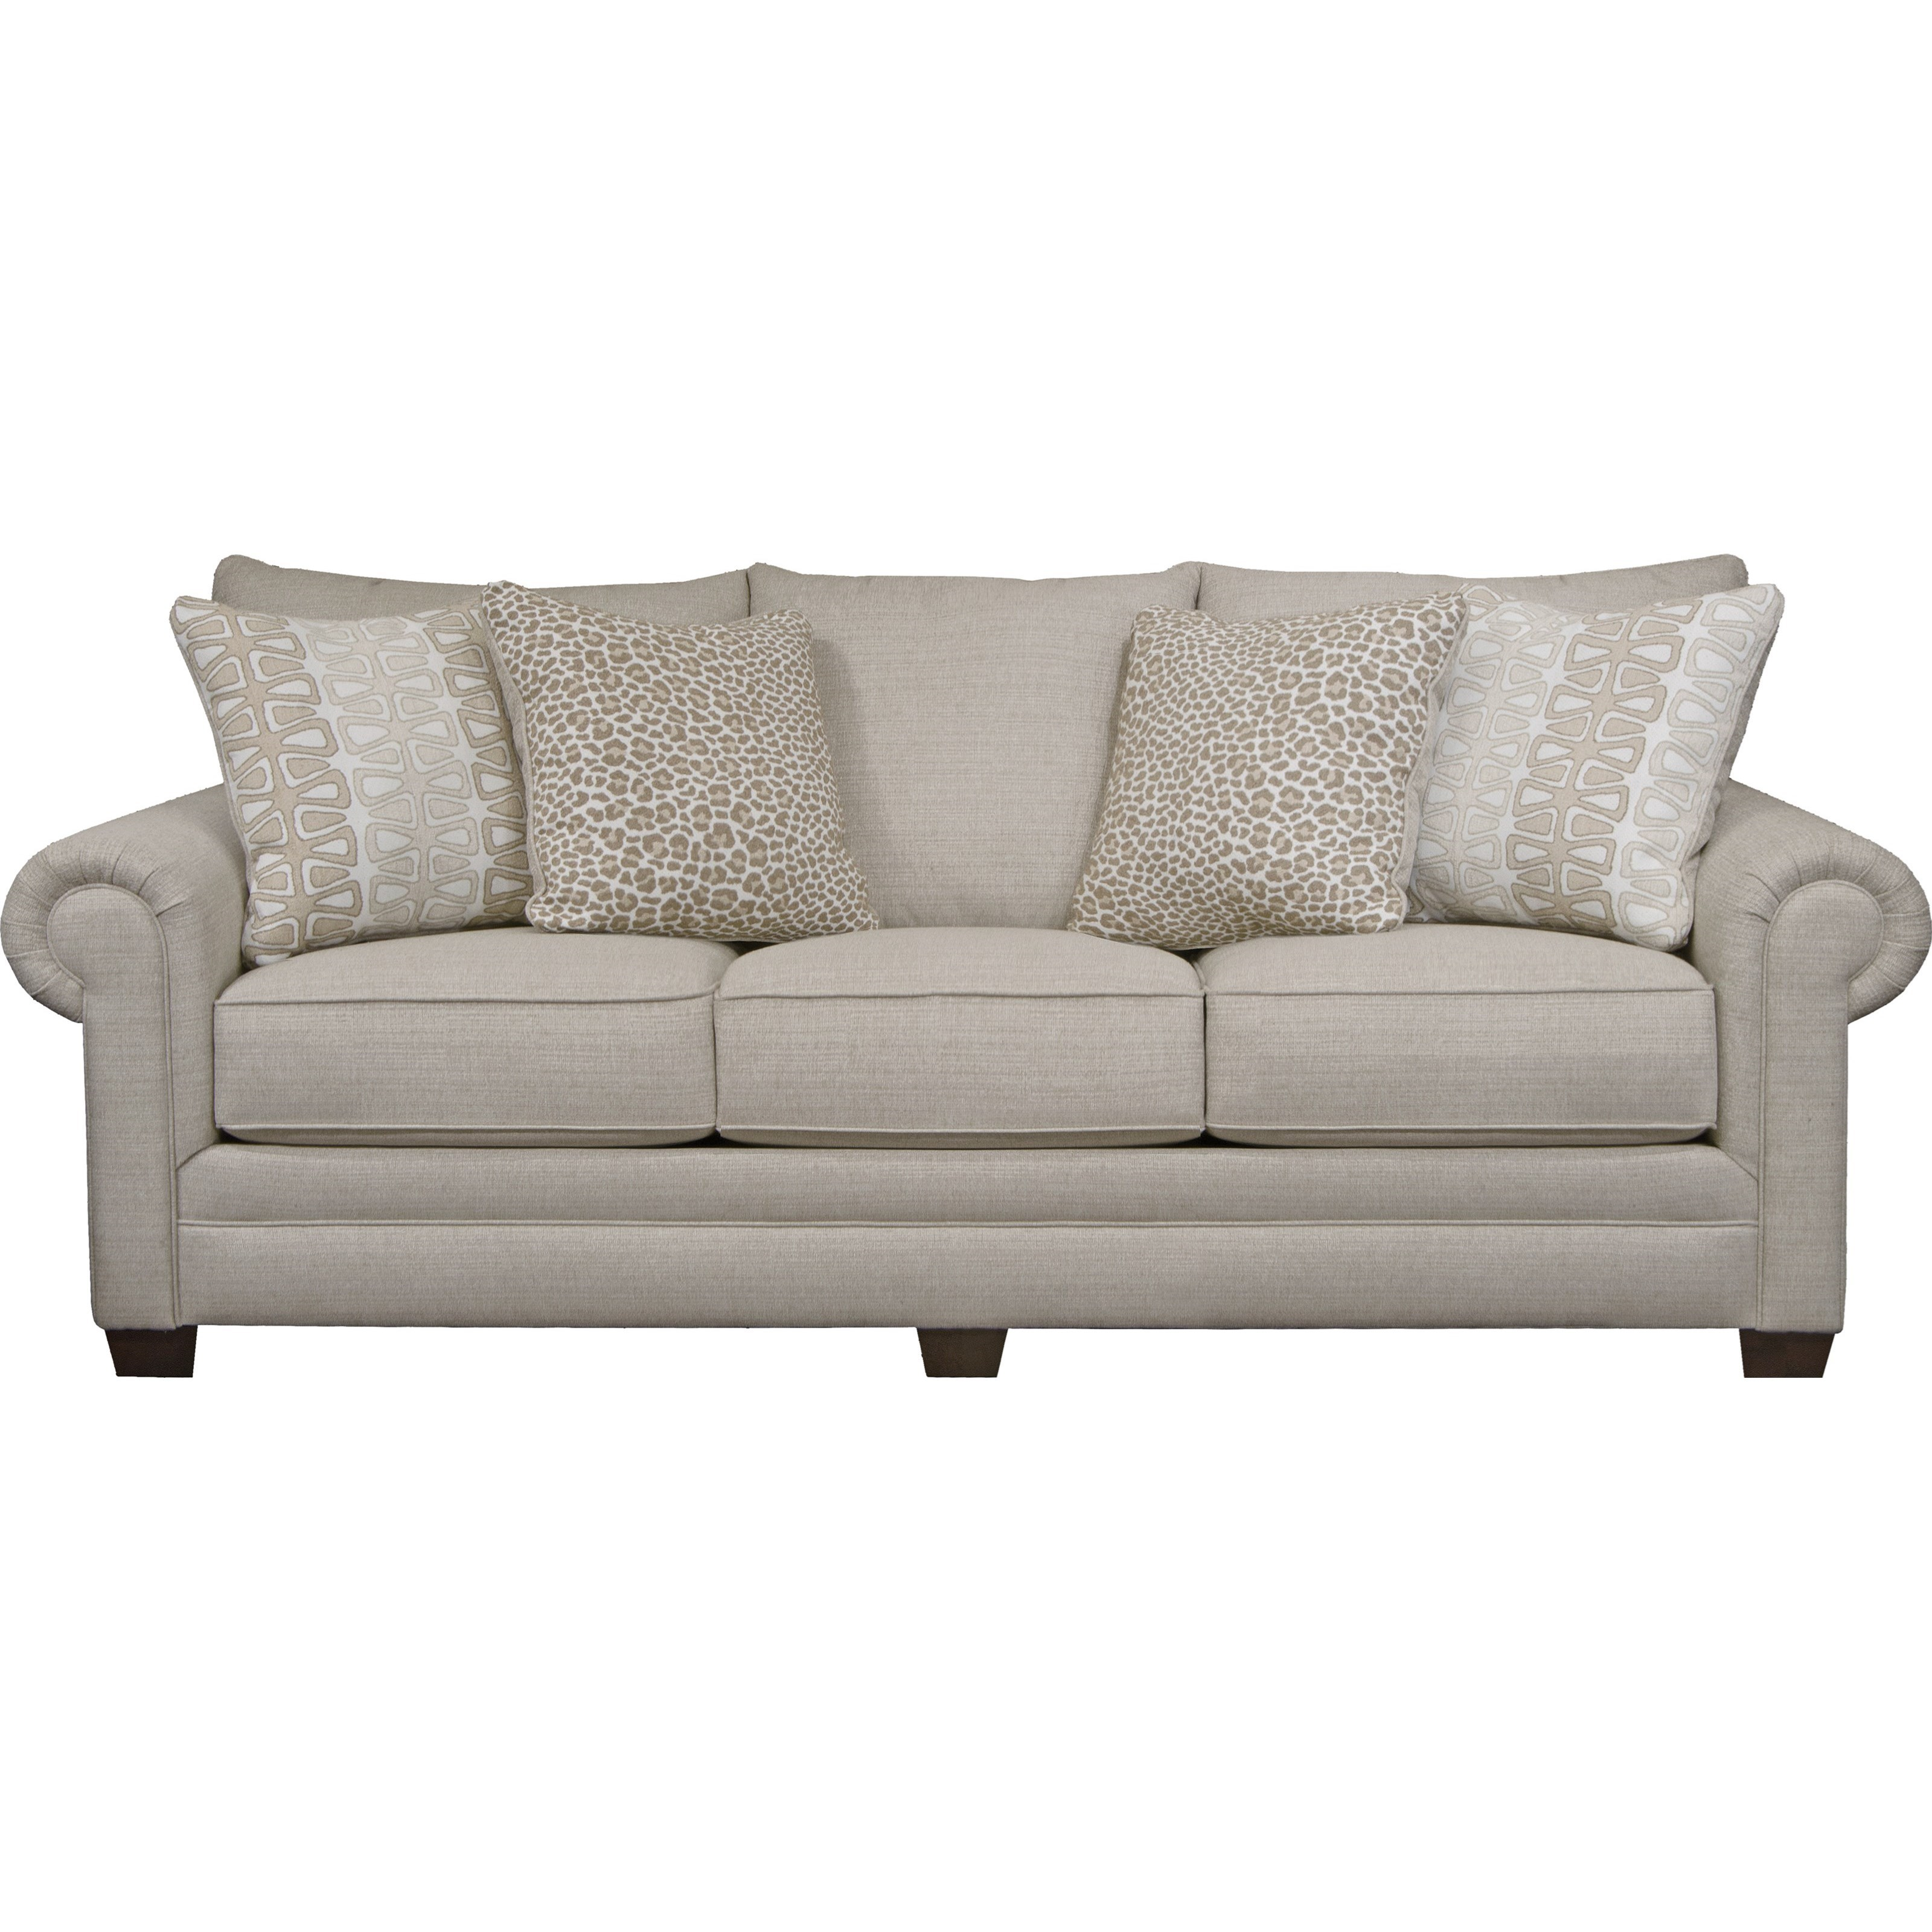 Havana Sofa by Jackson Furniture at Northeast Factory Direct